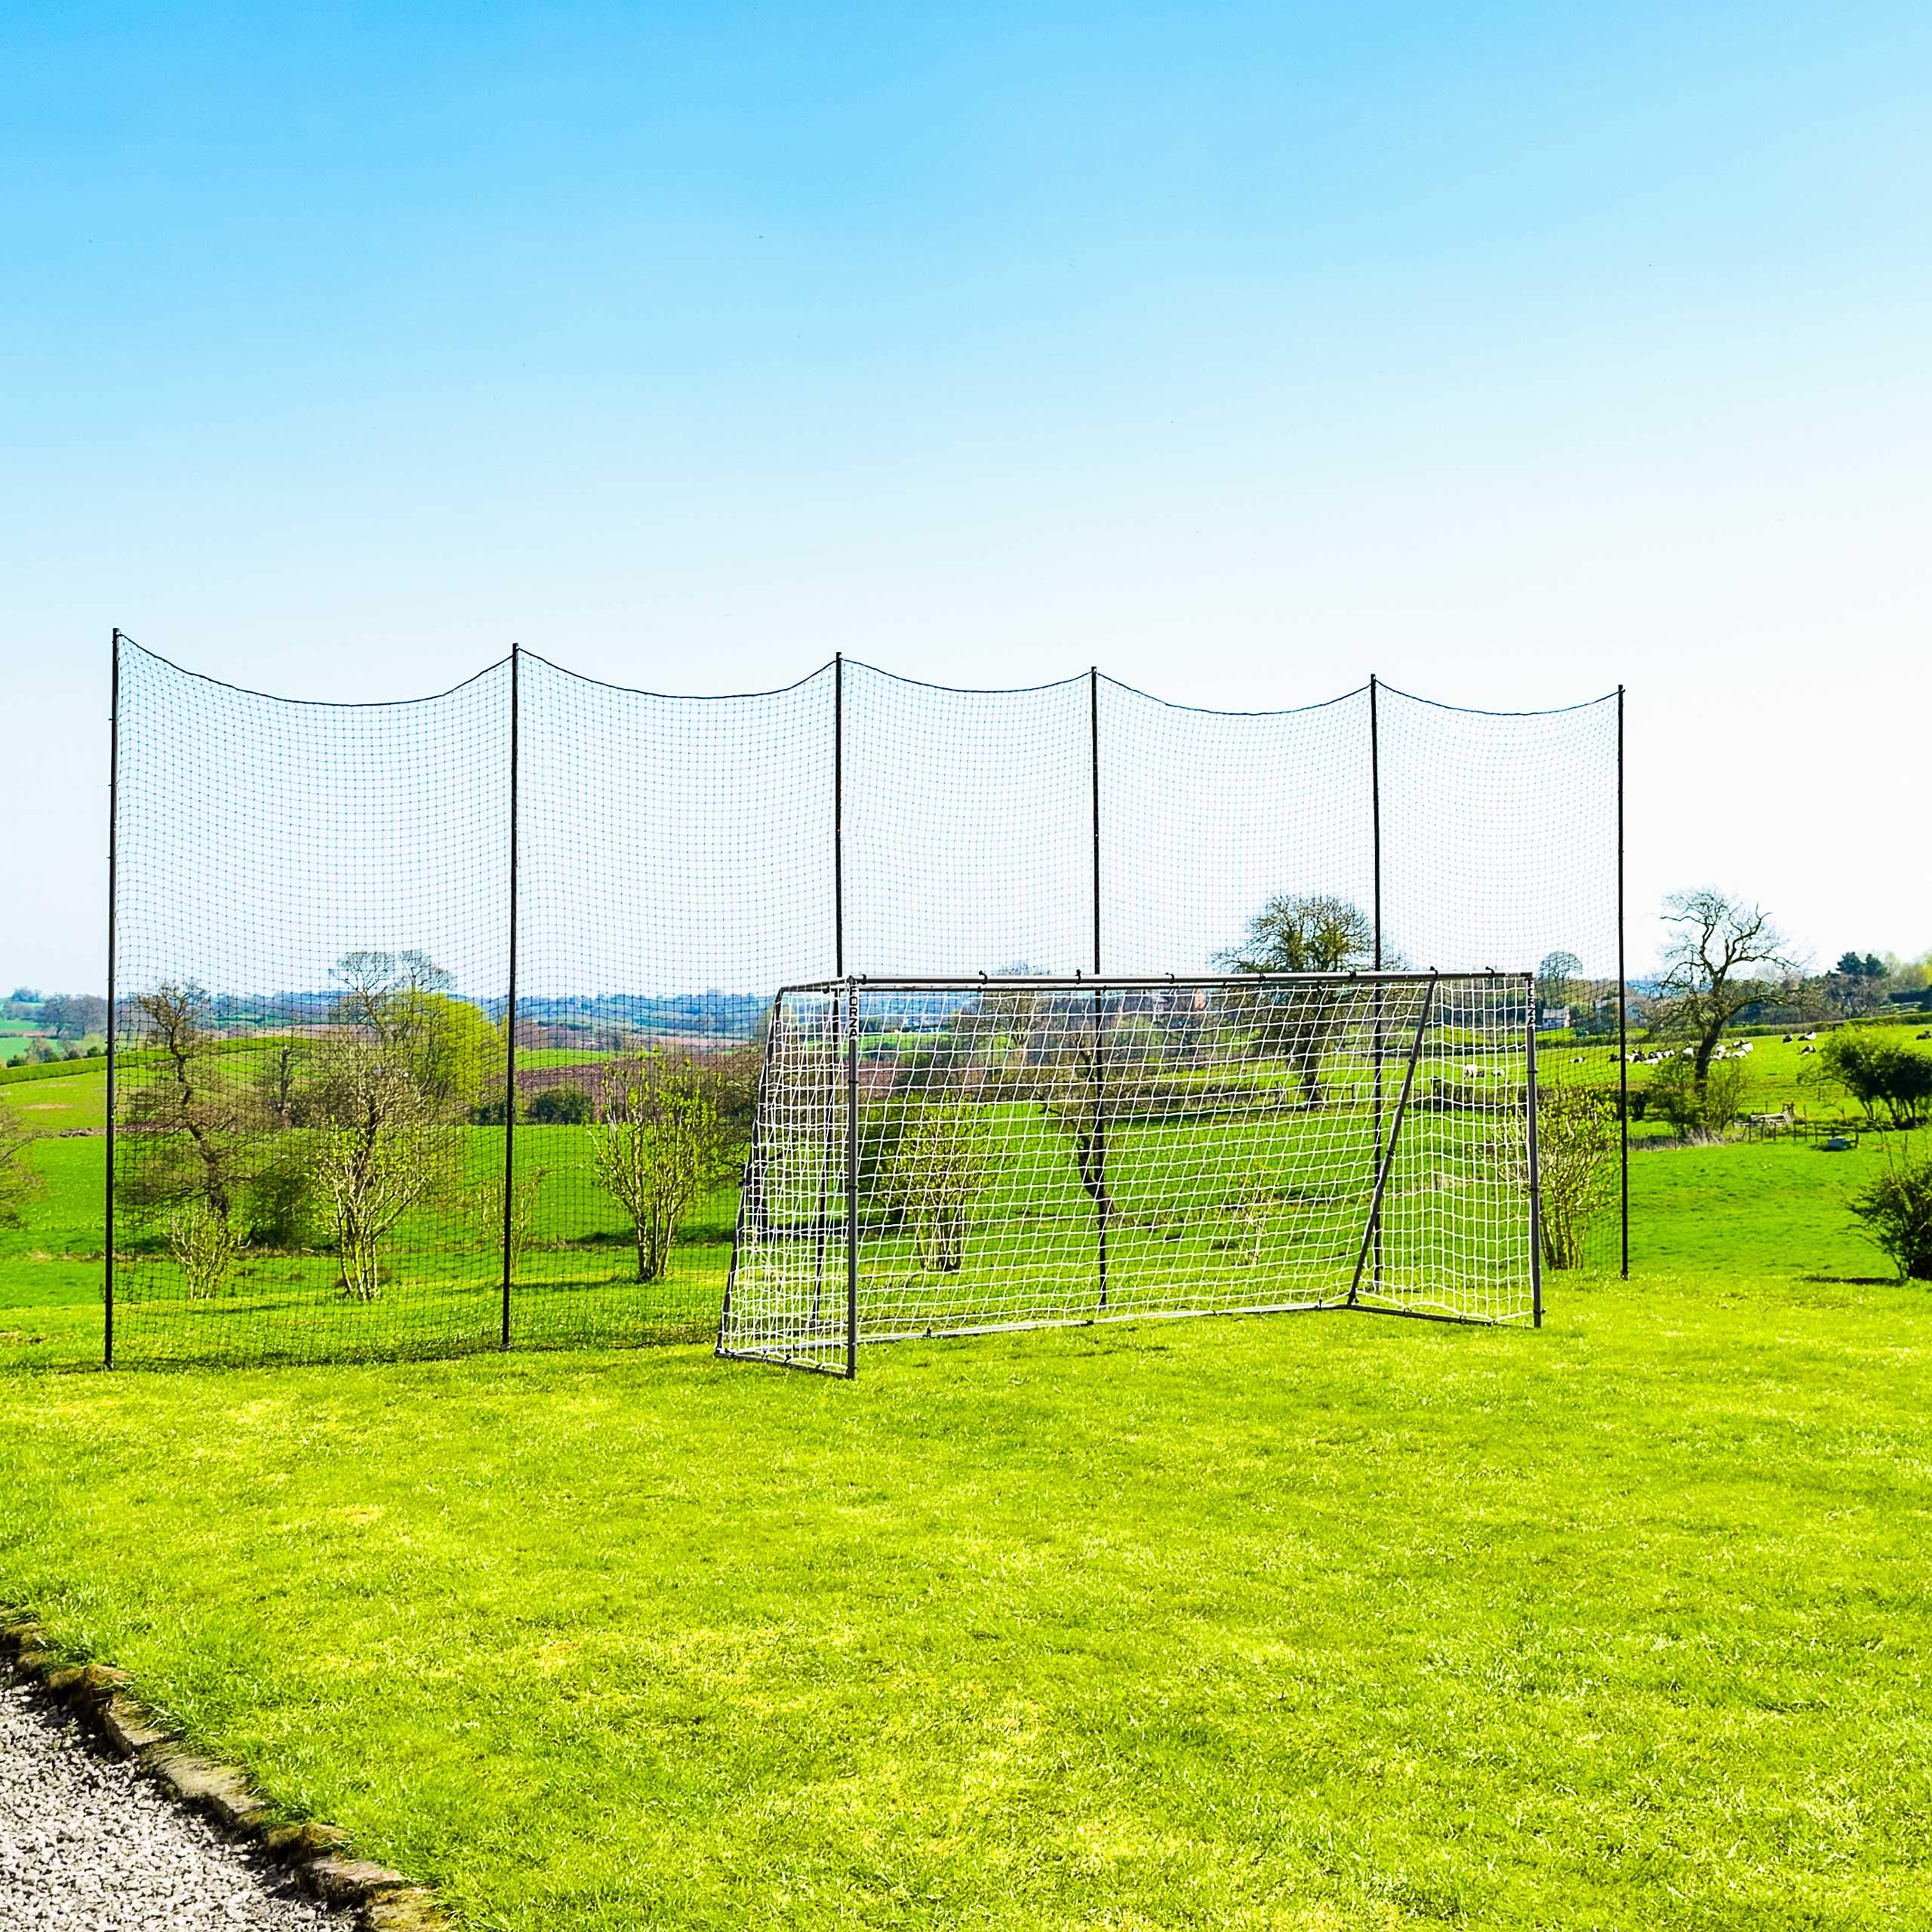 Socketed Stop That Ball - Multi-Sport Ball Stop Netting System for The Backyard, School or Sports Clubs (20ft) by Net World Sports